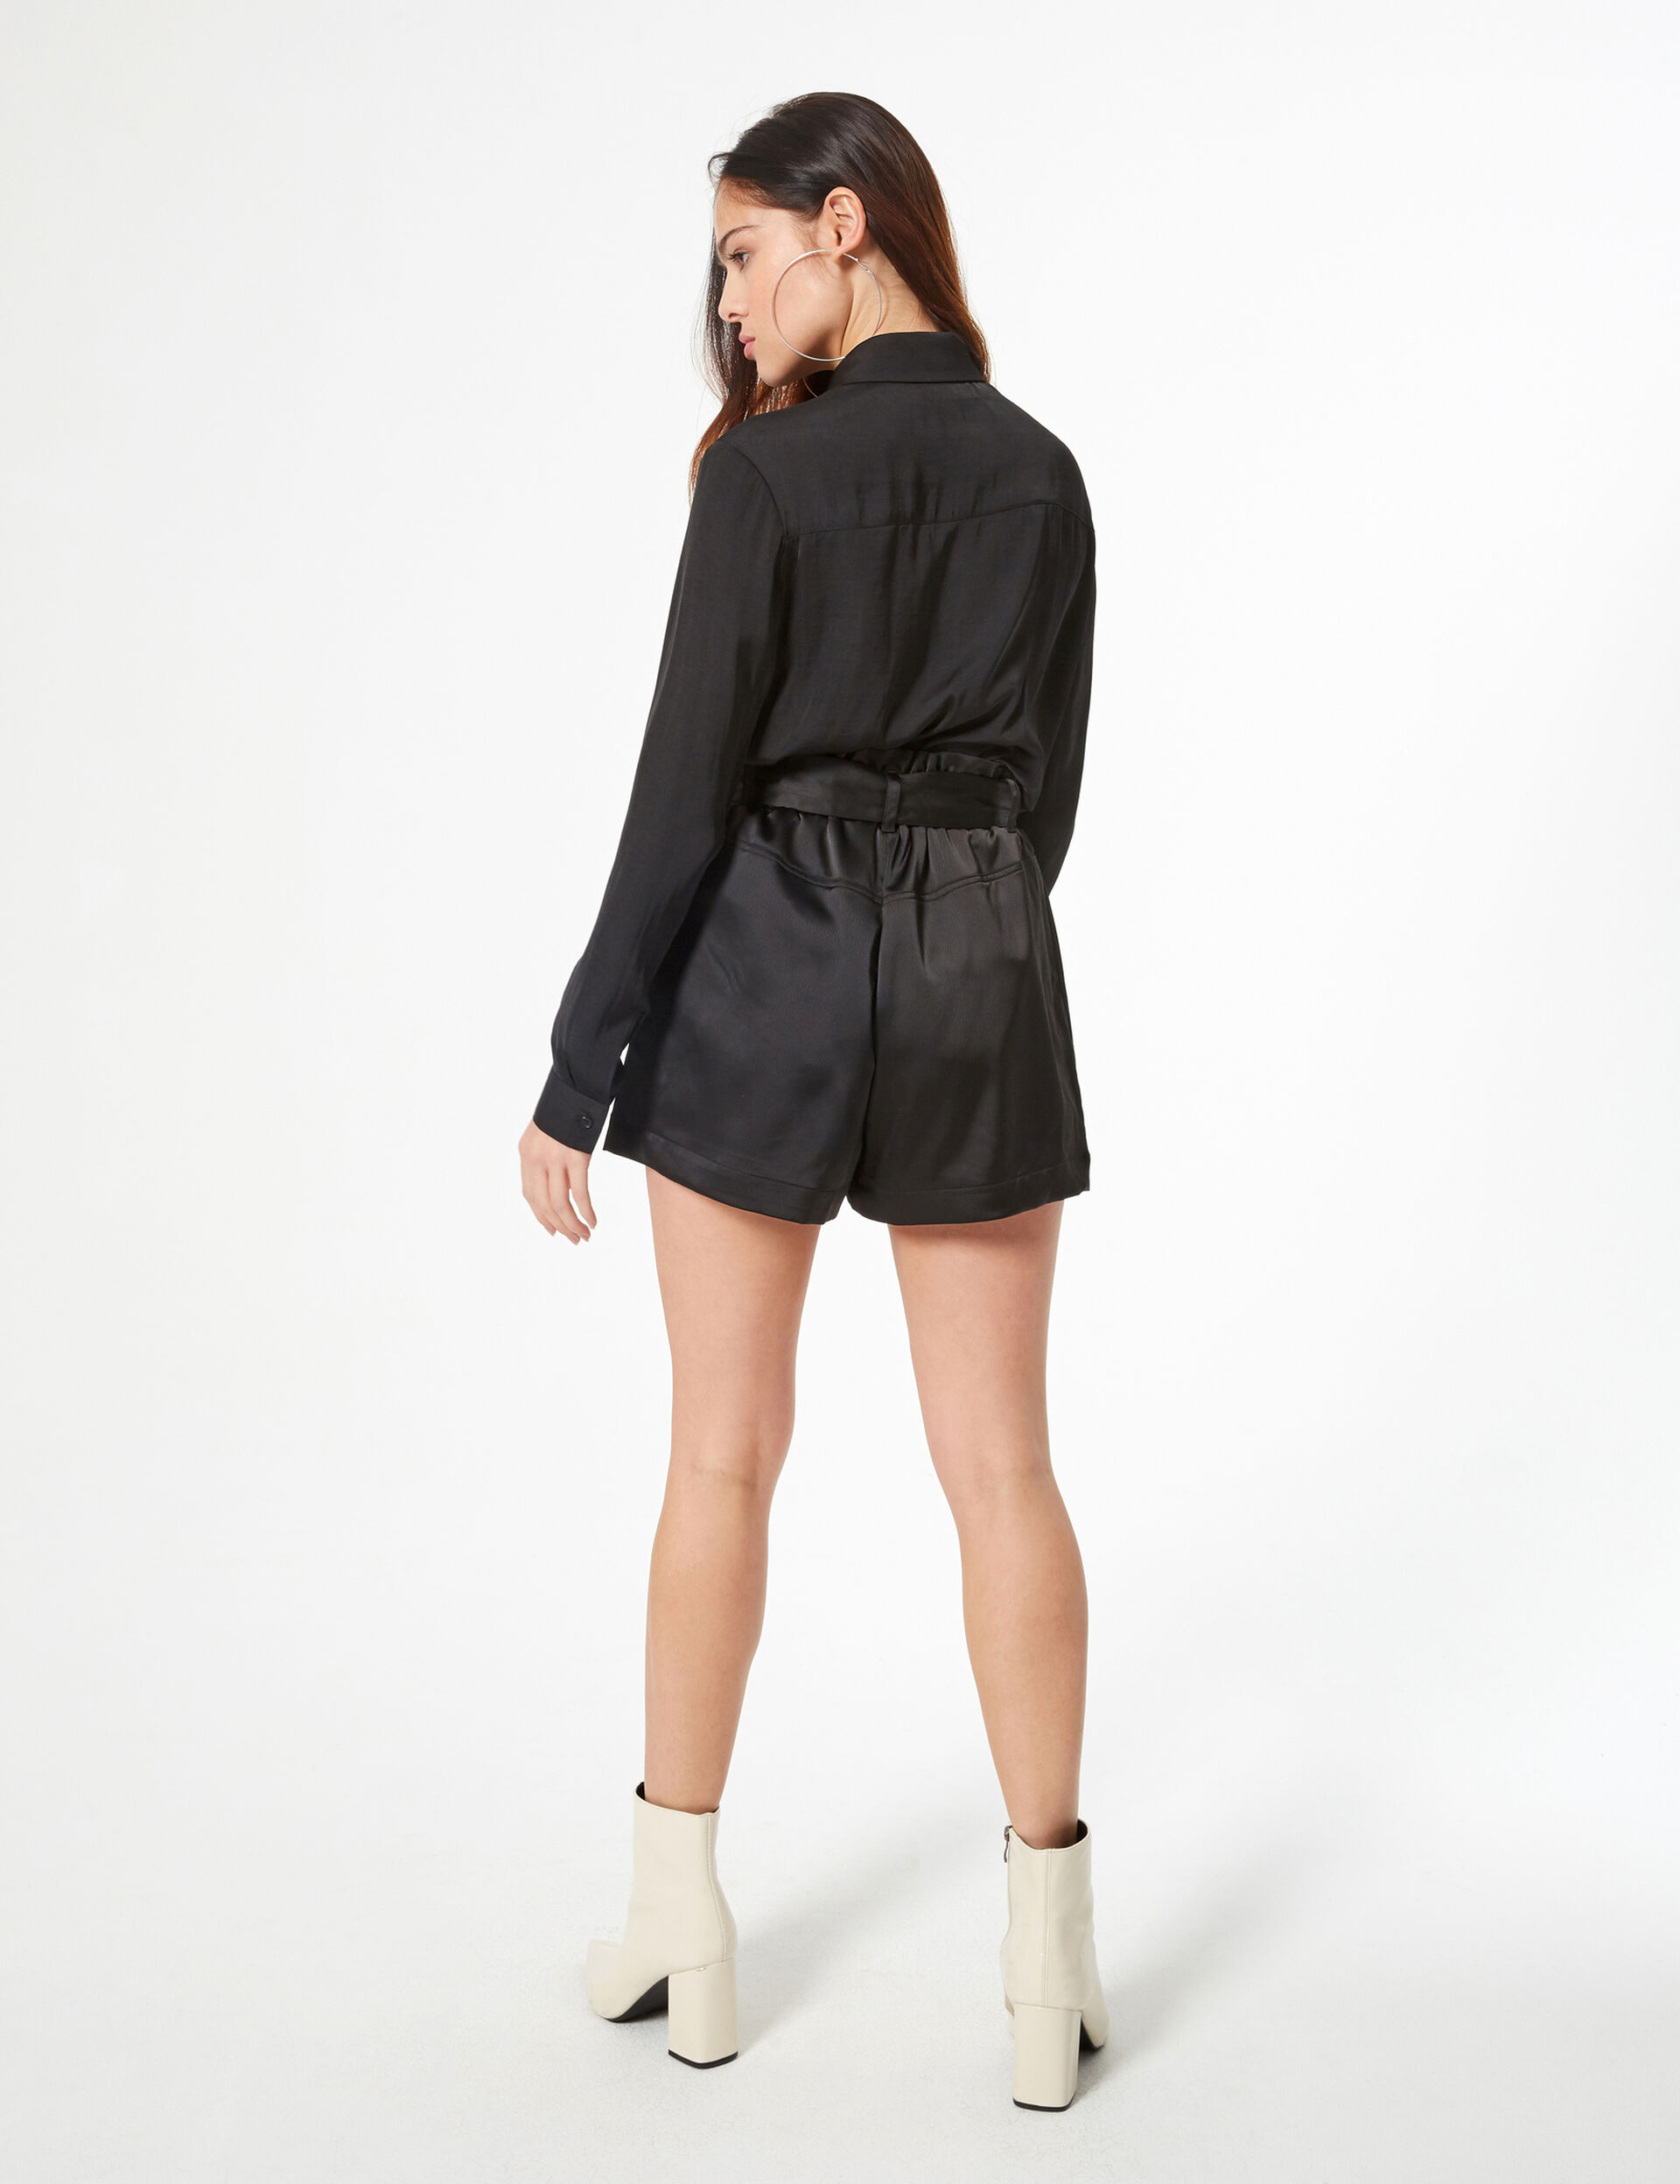 High-waisted satin shorts